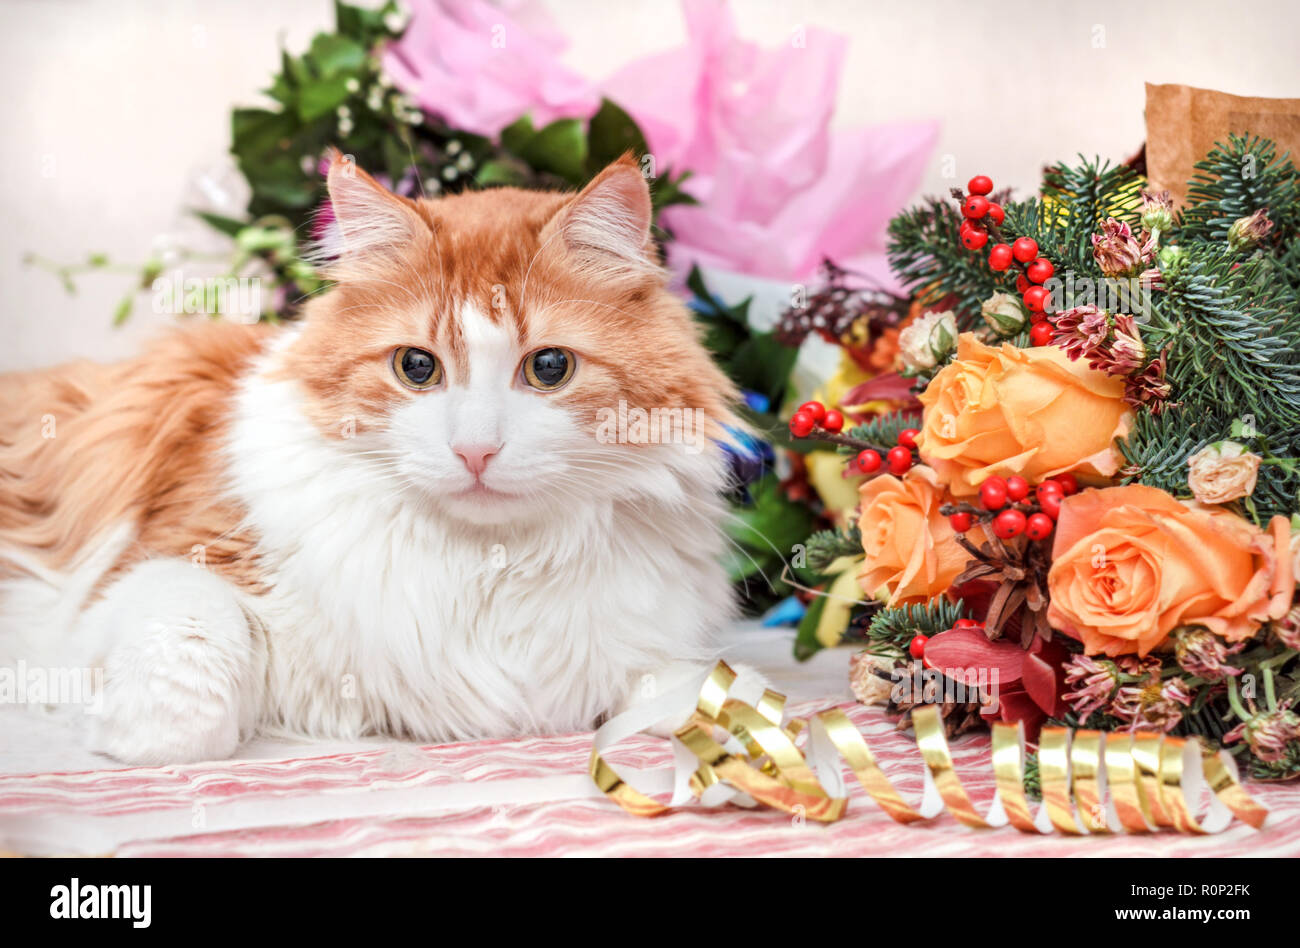 Aduly luxe chat rouge et gros bouquet du Nouvel An Photo Stock